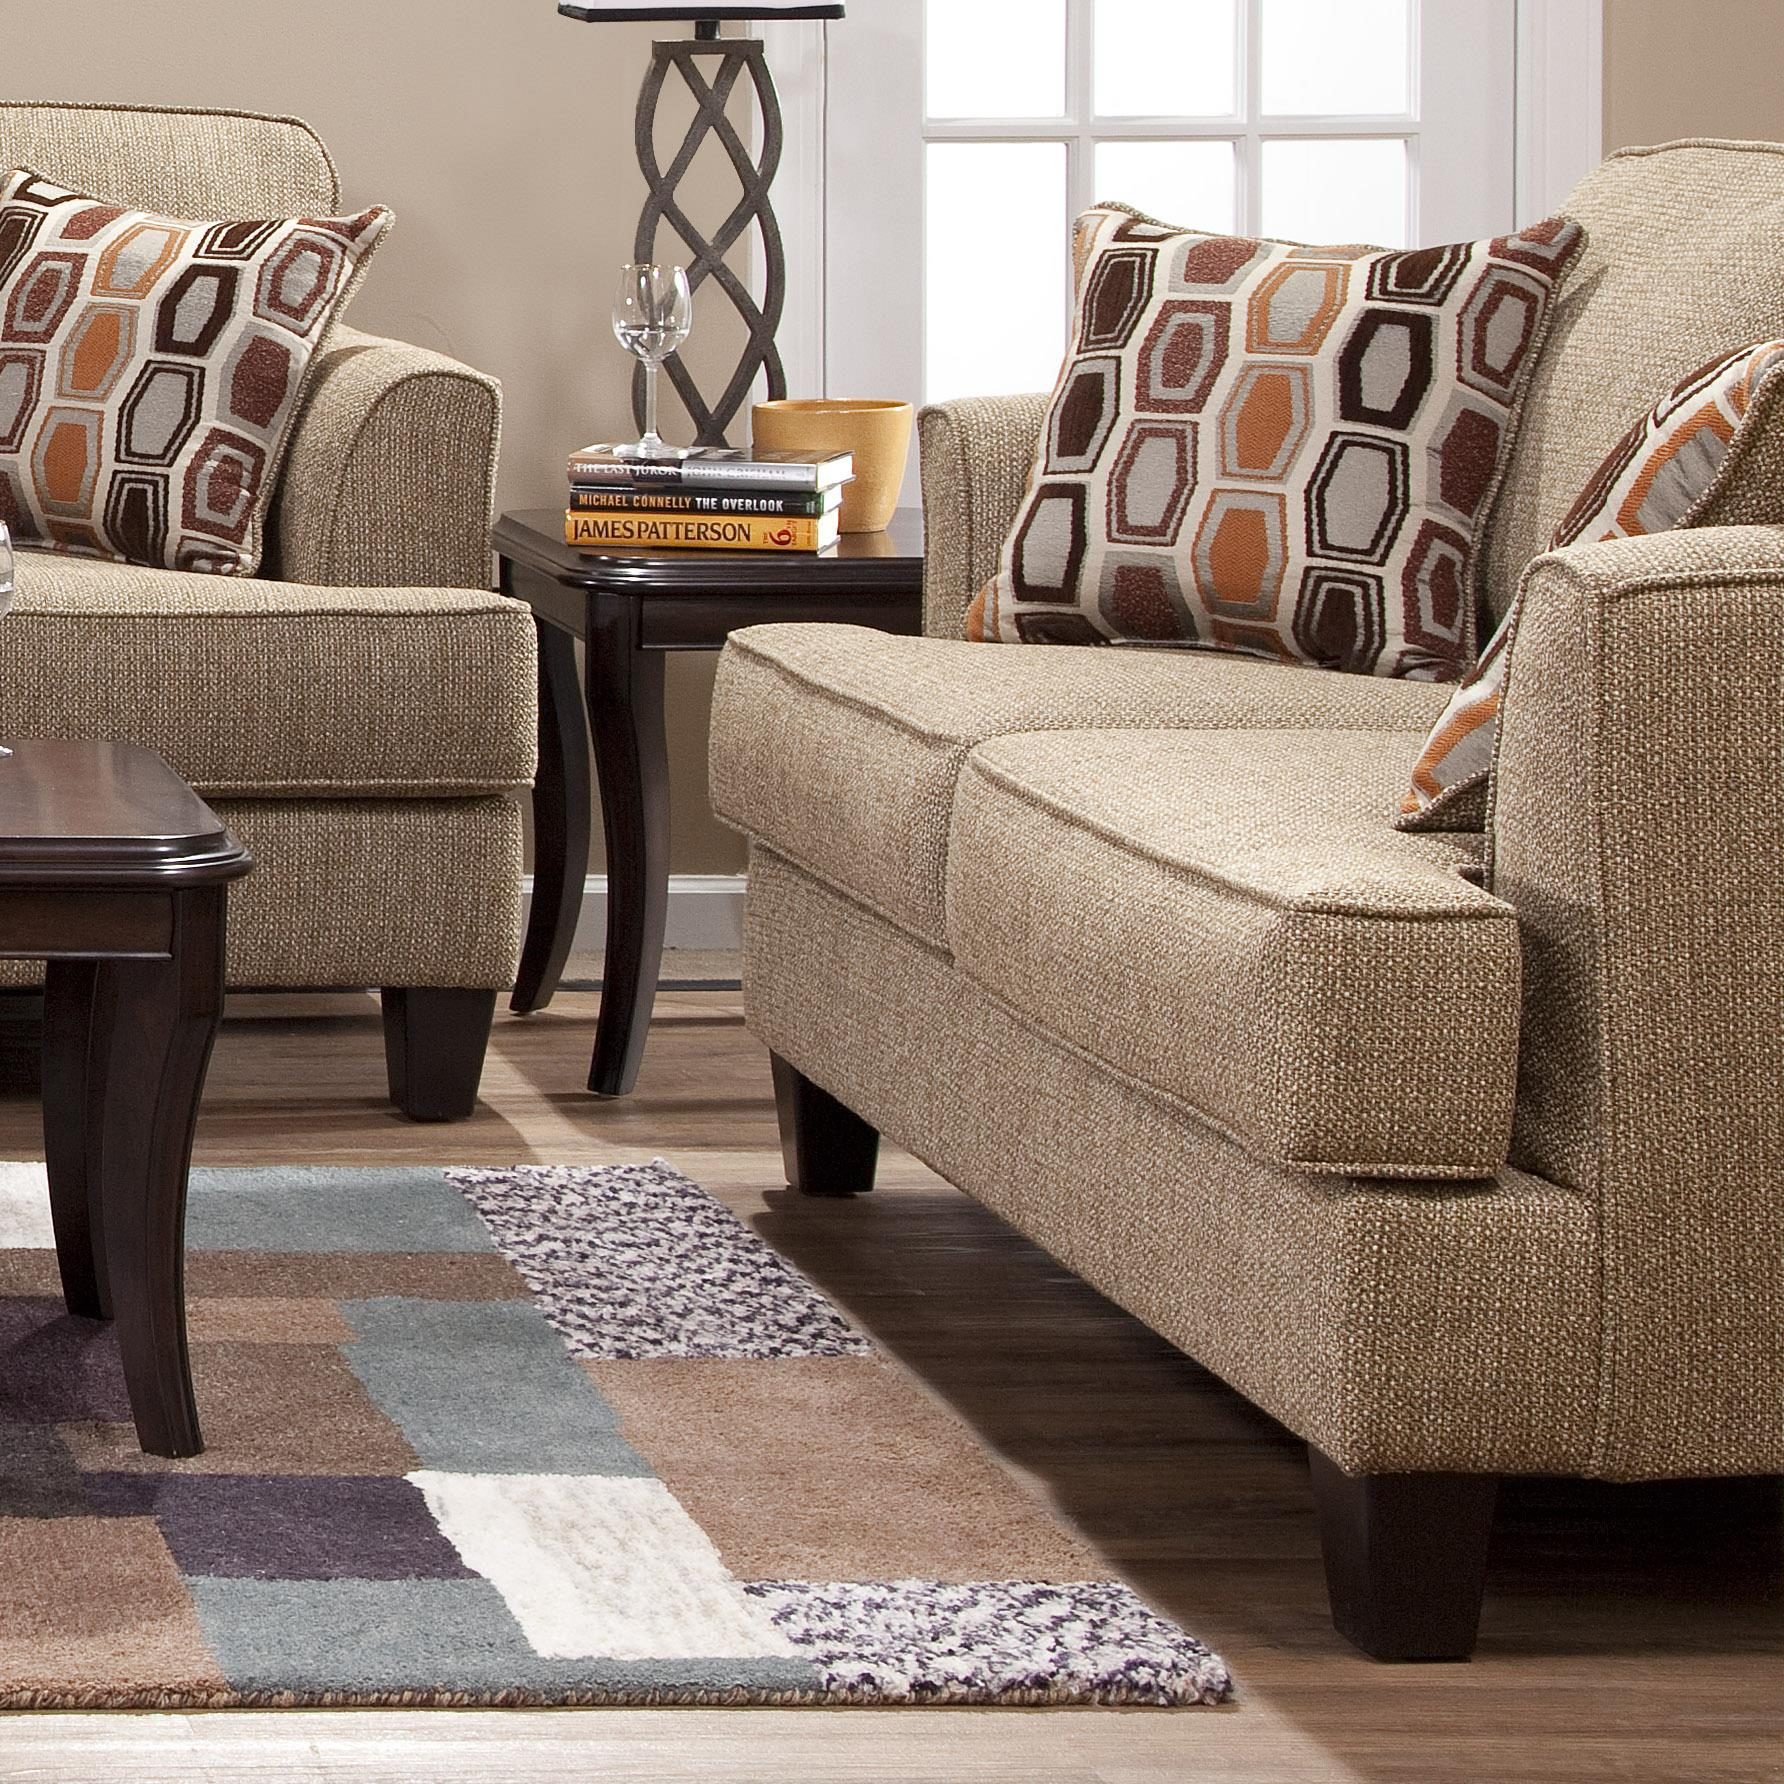 Serta Upholstery by Hughes Furniture 5600 Transitional Love Seat ...